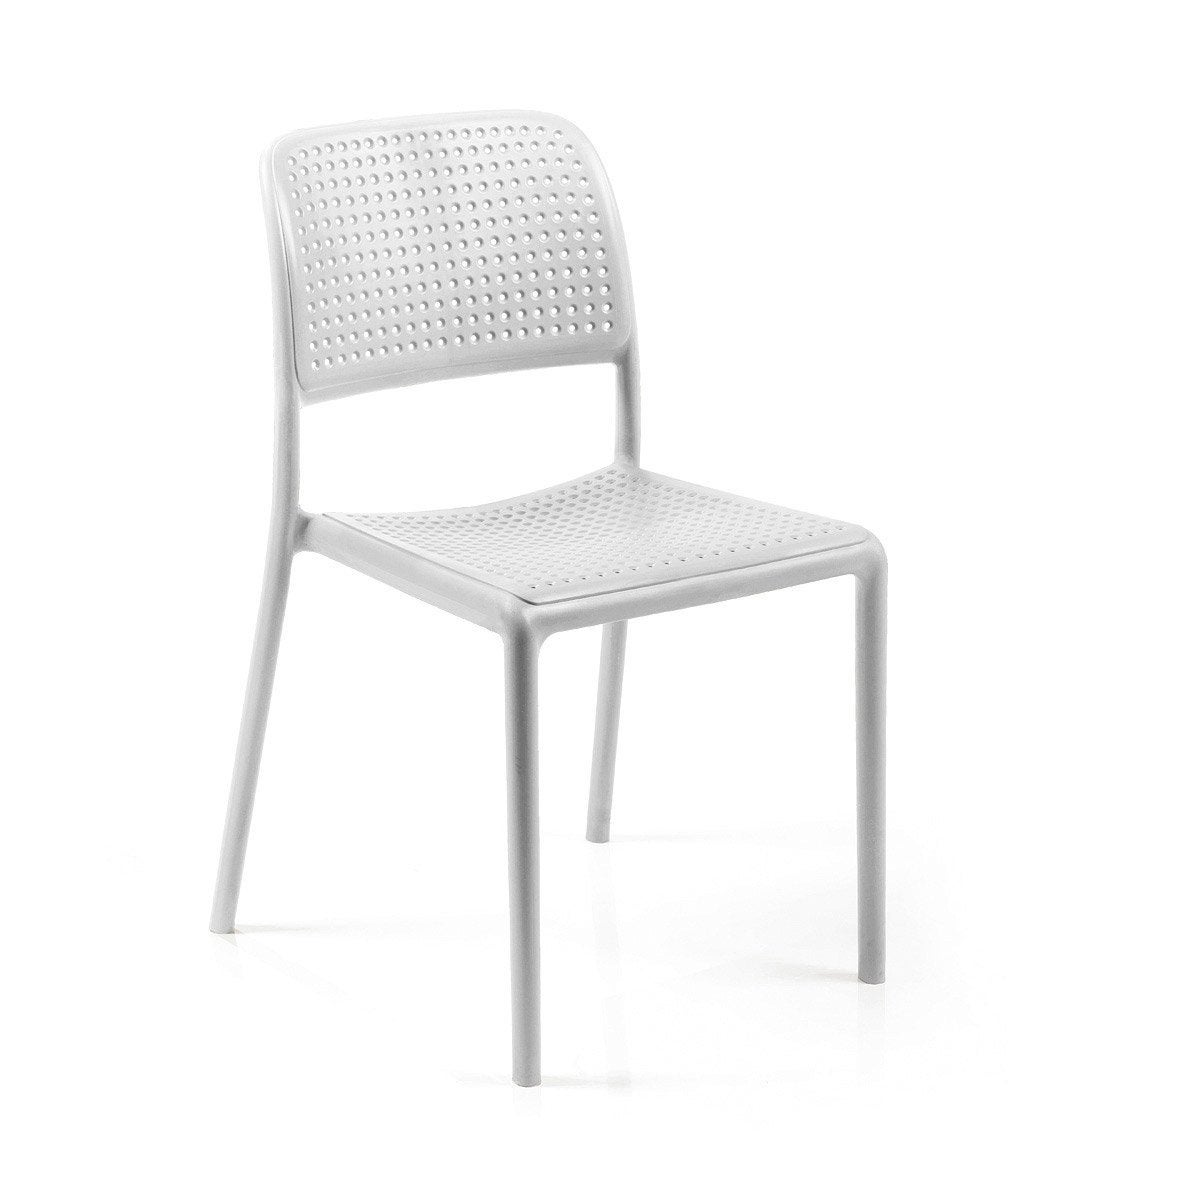 Chaise plastique transparent leroy merlin - Chaise de jardin plastique blanc ...